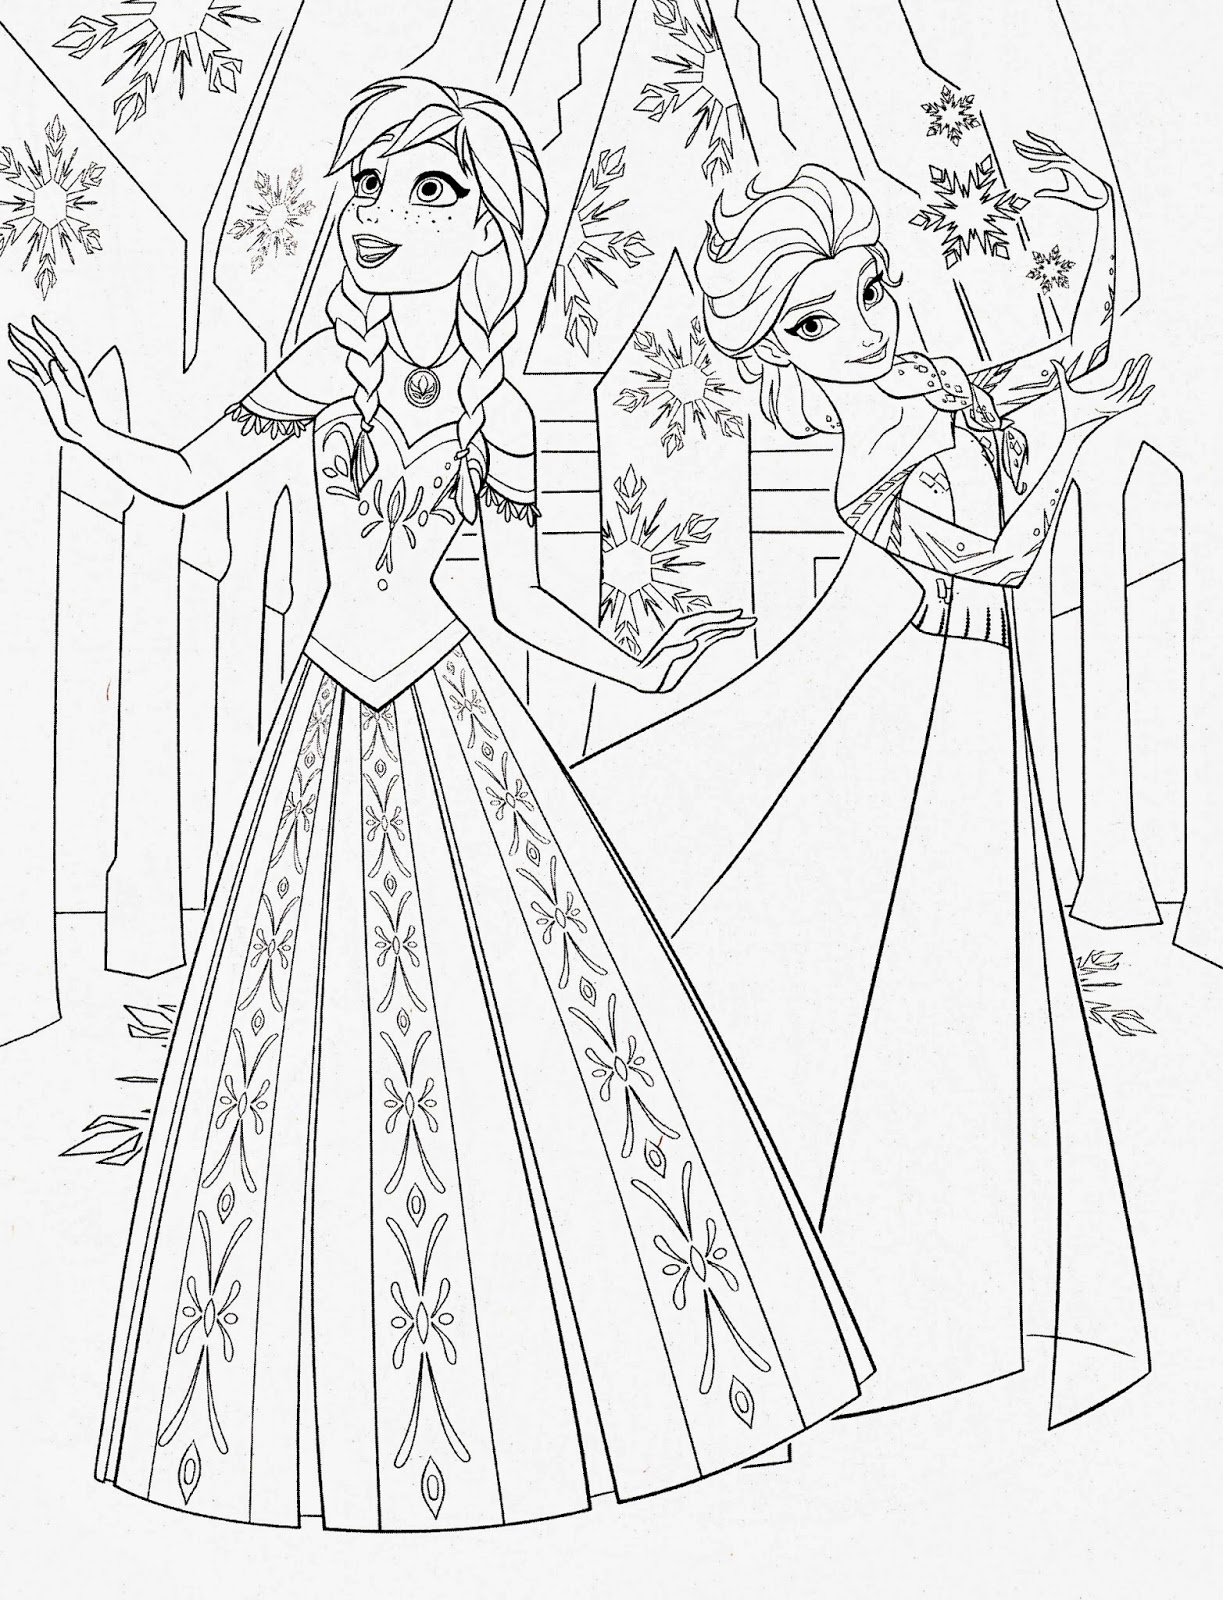 Generic princess coloring pages - Elsa Anna Frozen Filmprincesses Filminspector Com